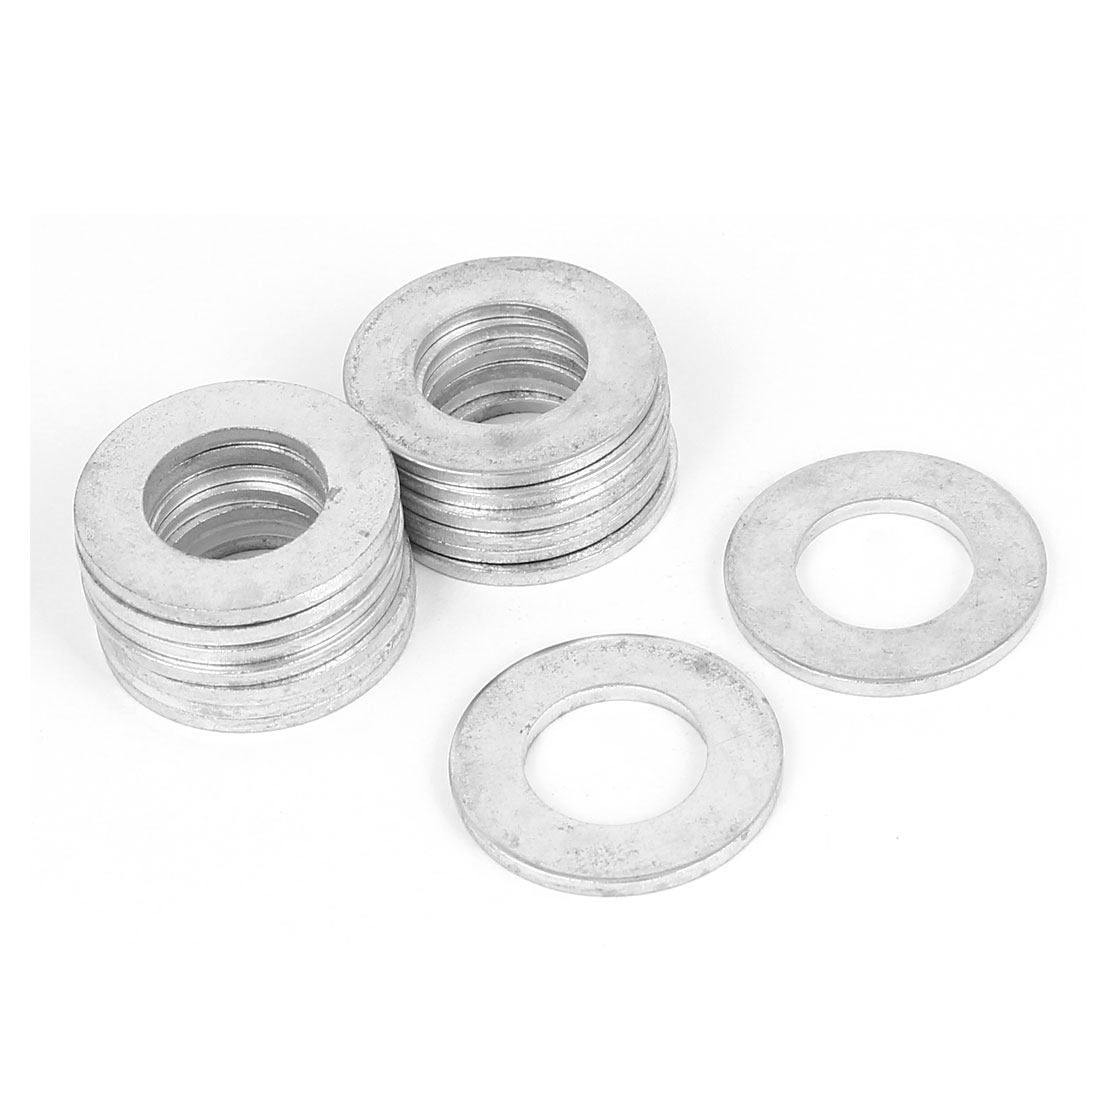 14mm x 28mm x 2mm Zinc Plated Flat Pads Washers Gaskets Fasteners GB97 15PCS